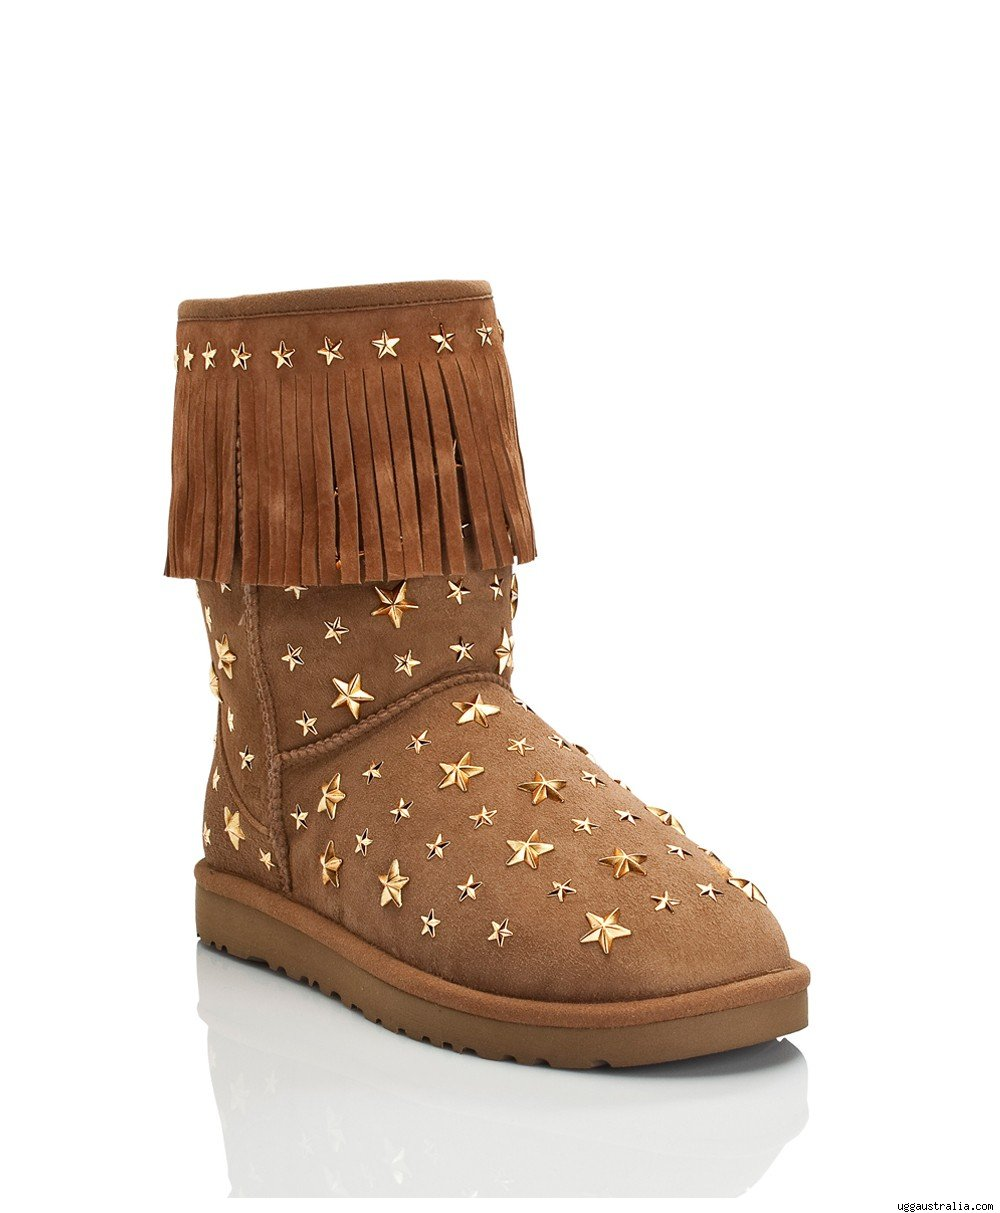 UGG je jimmy Choo